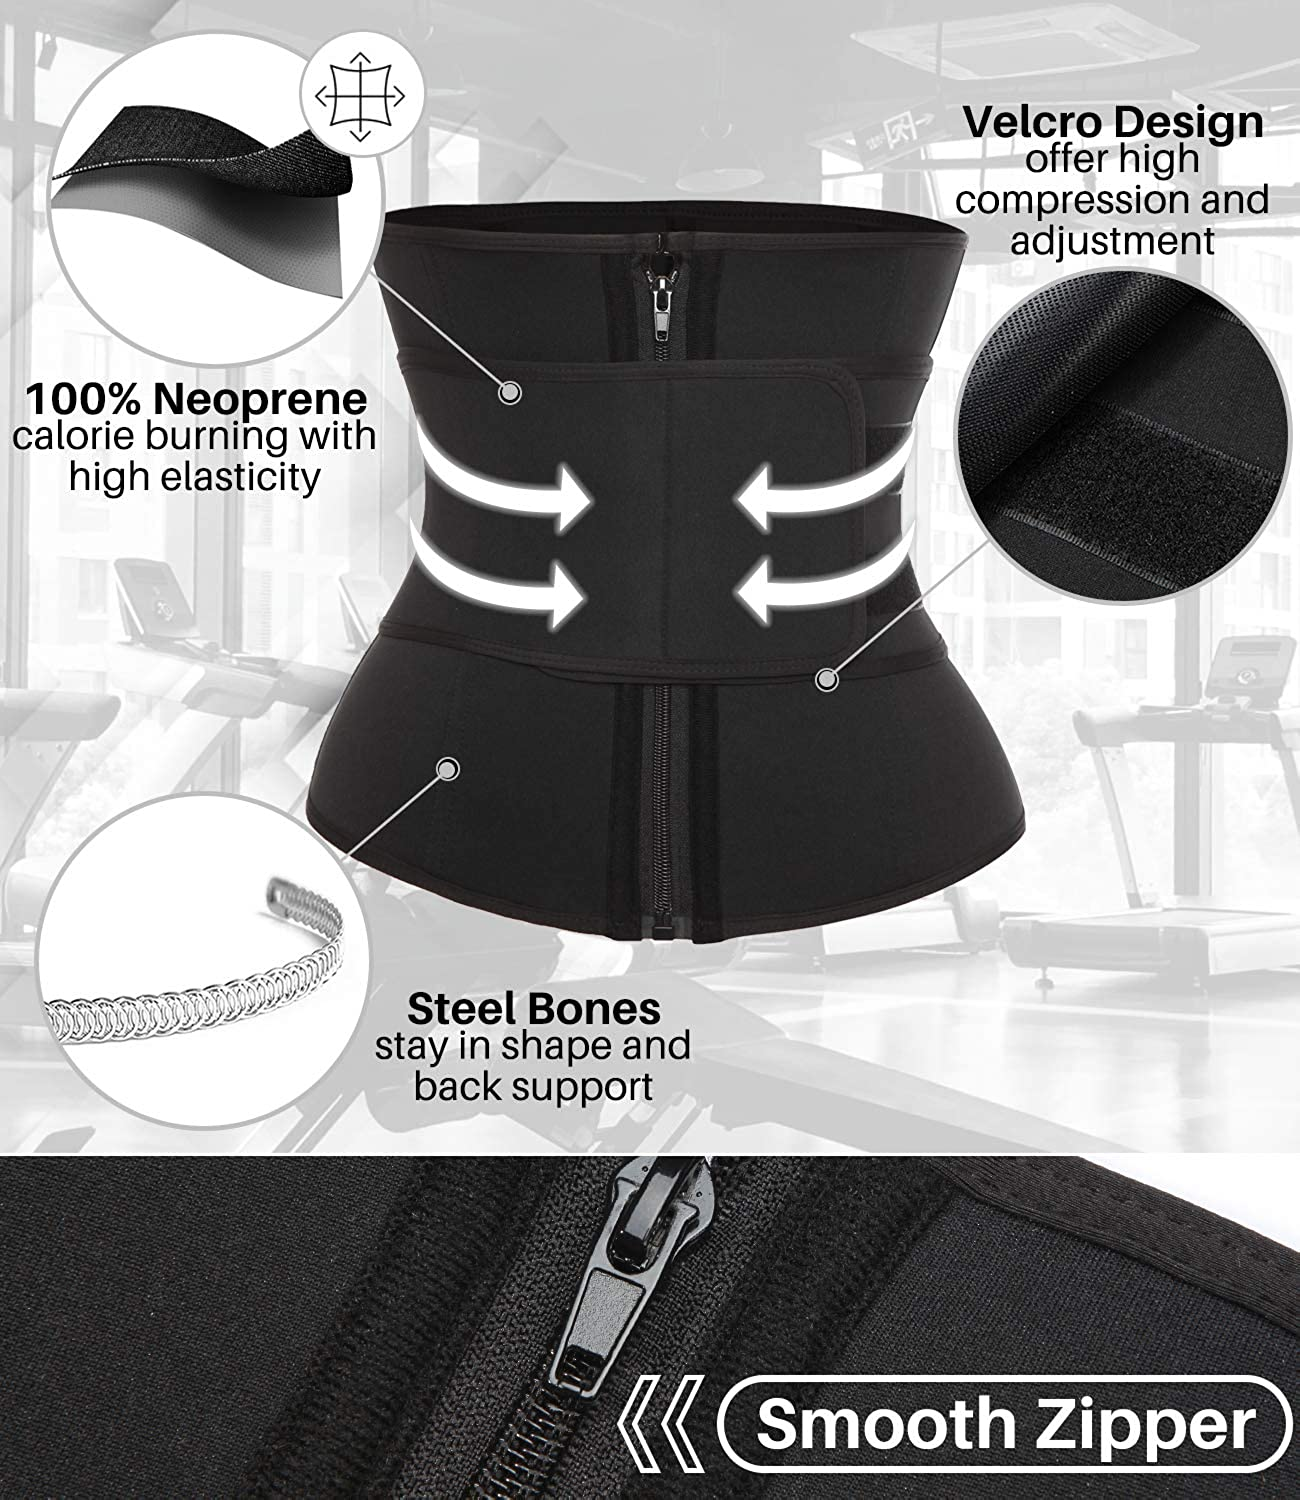 COMFREE Neoprene Waist Cincher Trimmer Trainer Shaper for Women Exercise with Zipper and Strap Black 3XL